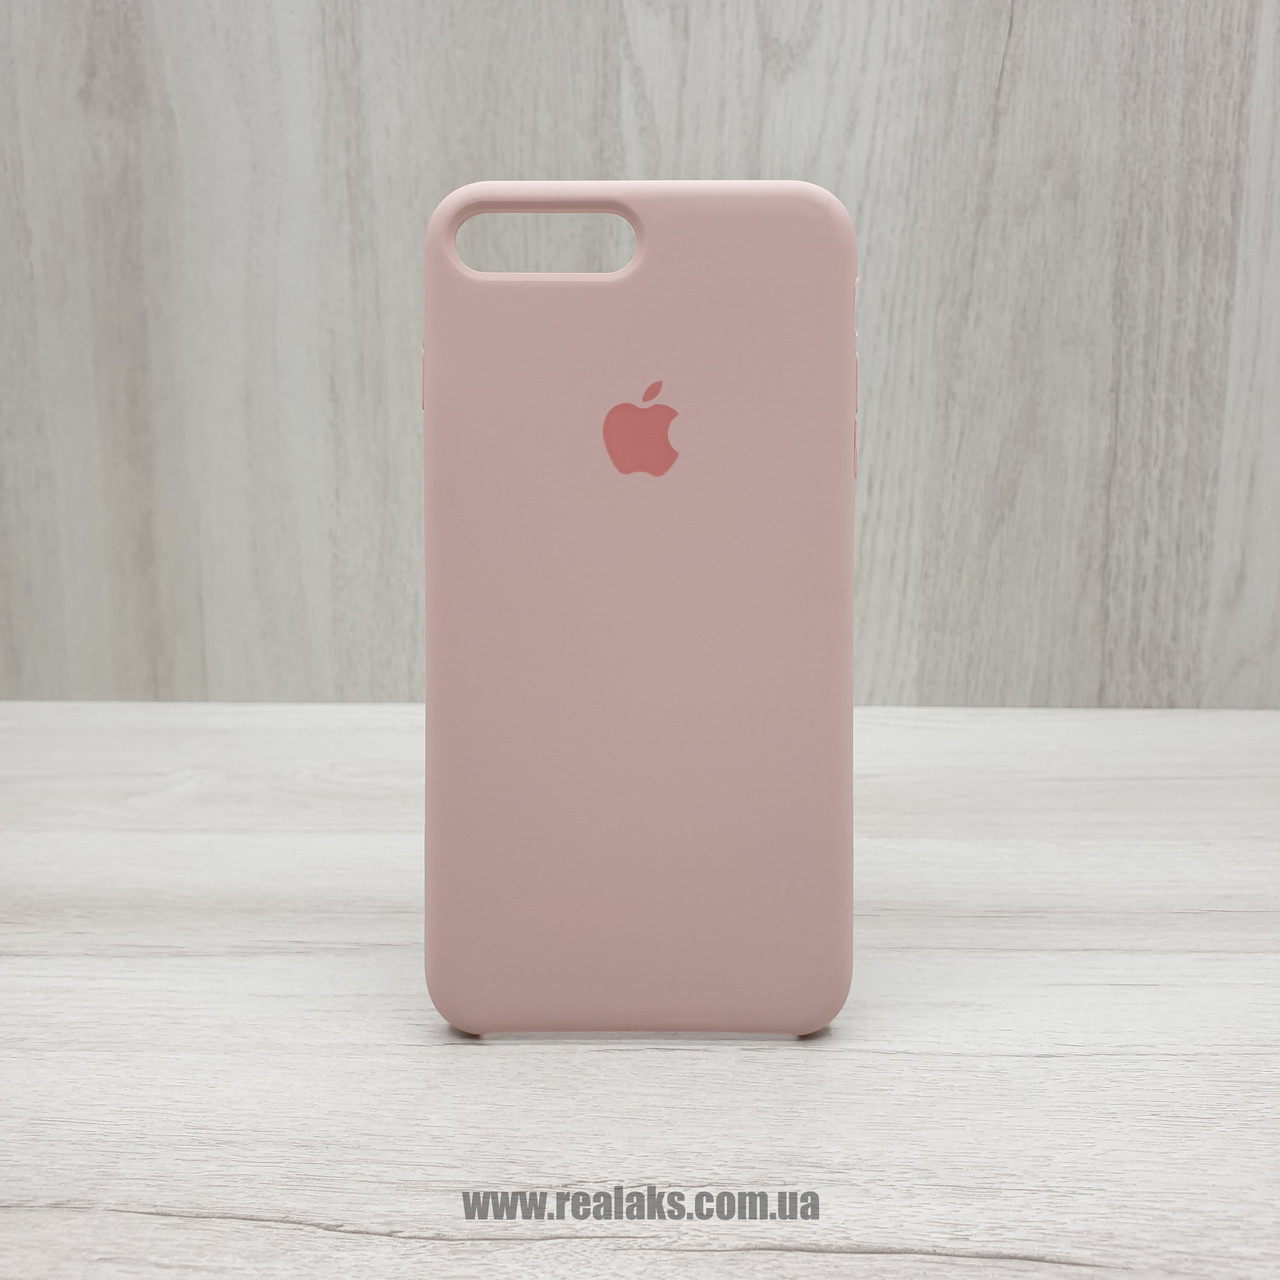 Чехол Silicone Case для Apple iPhone 7/8 Plus pink sand